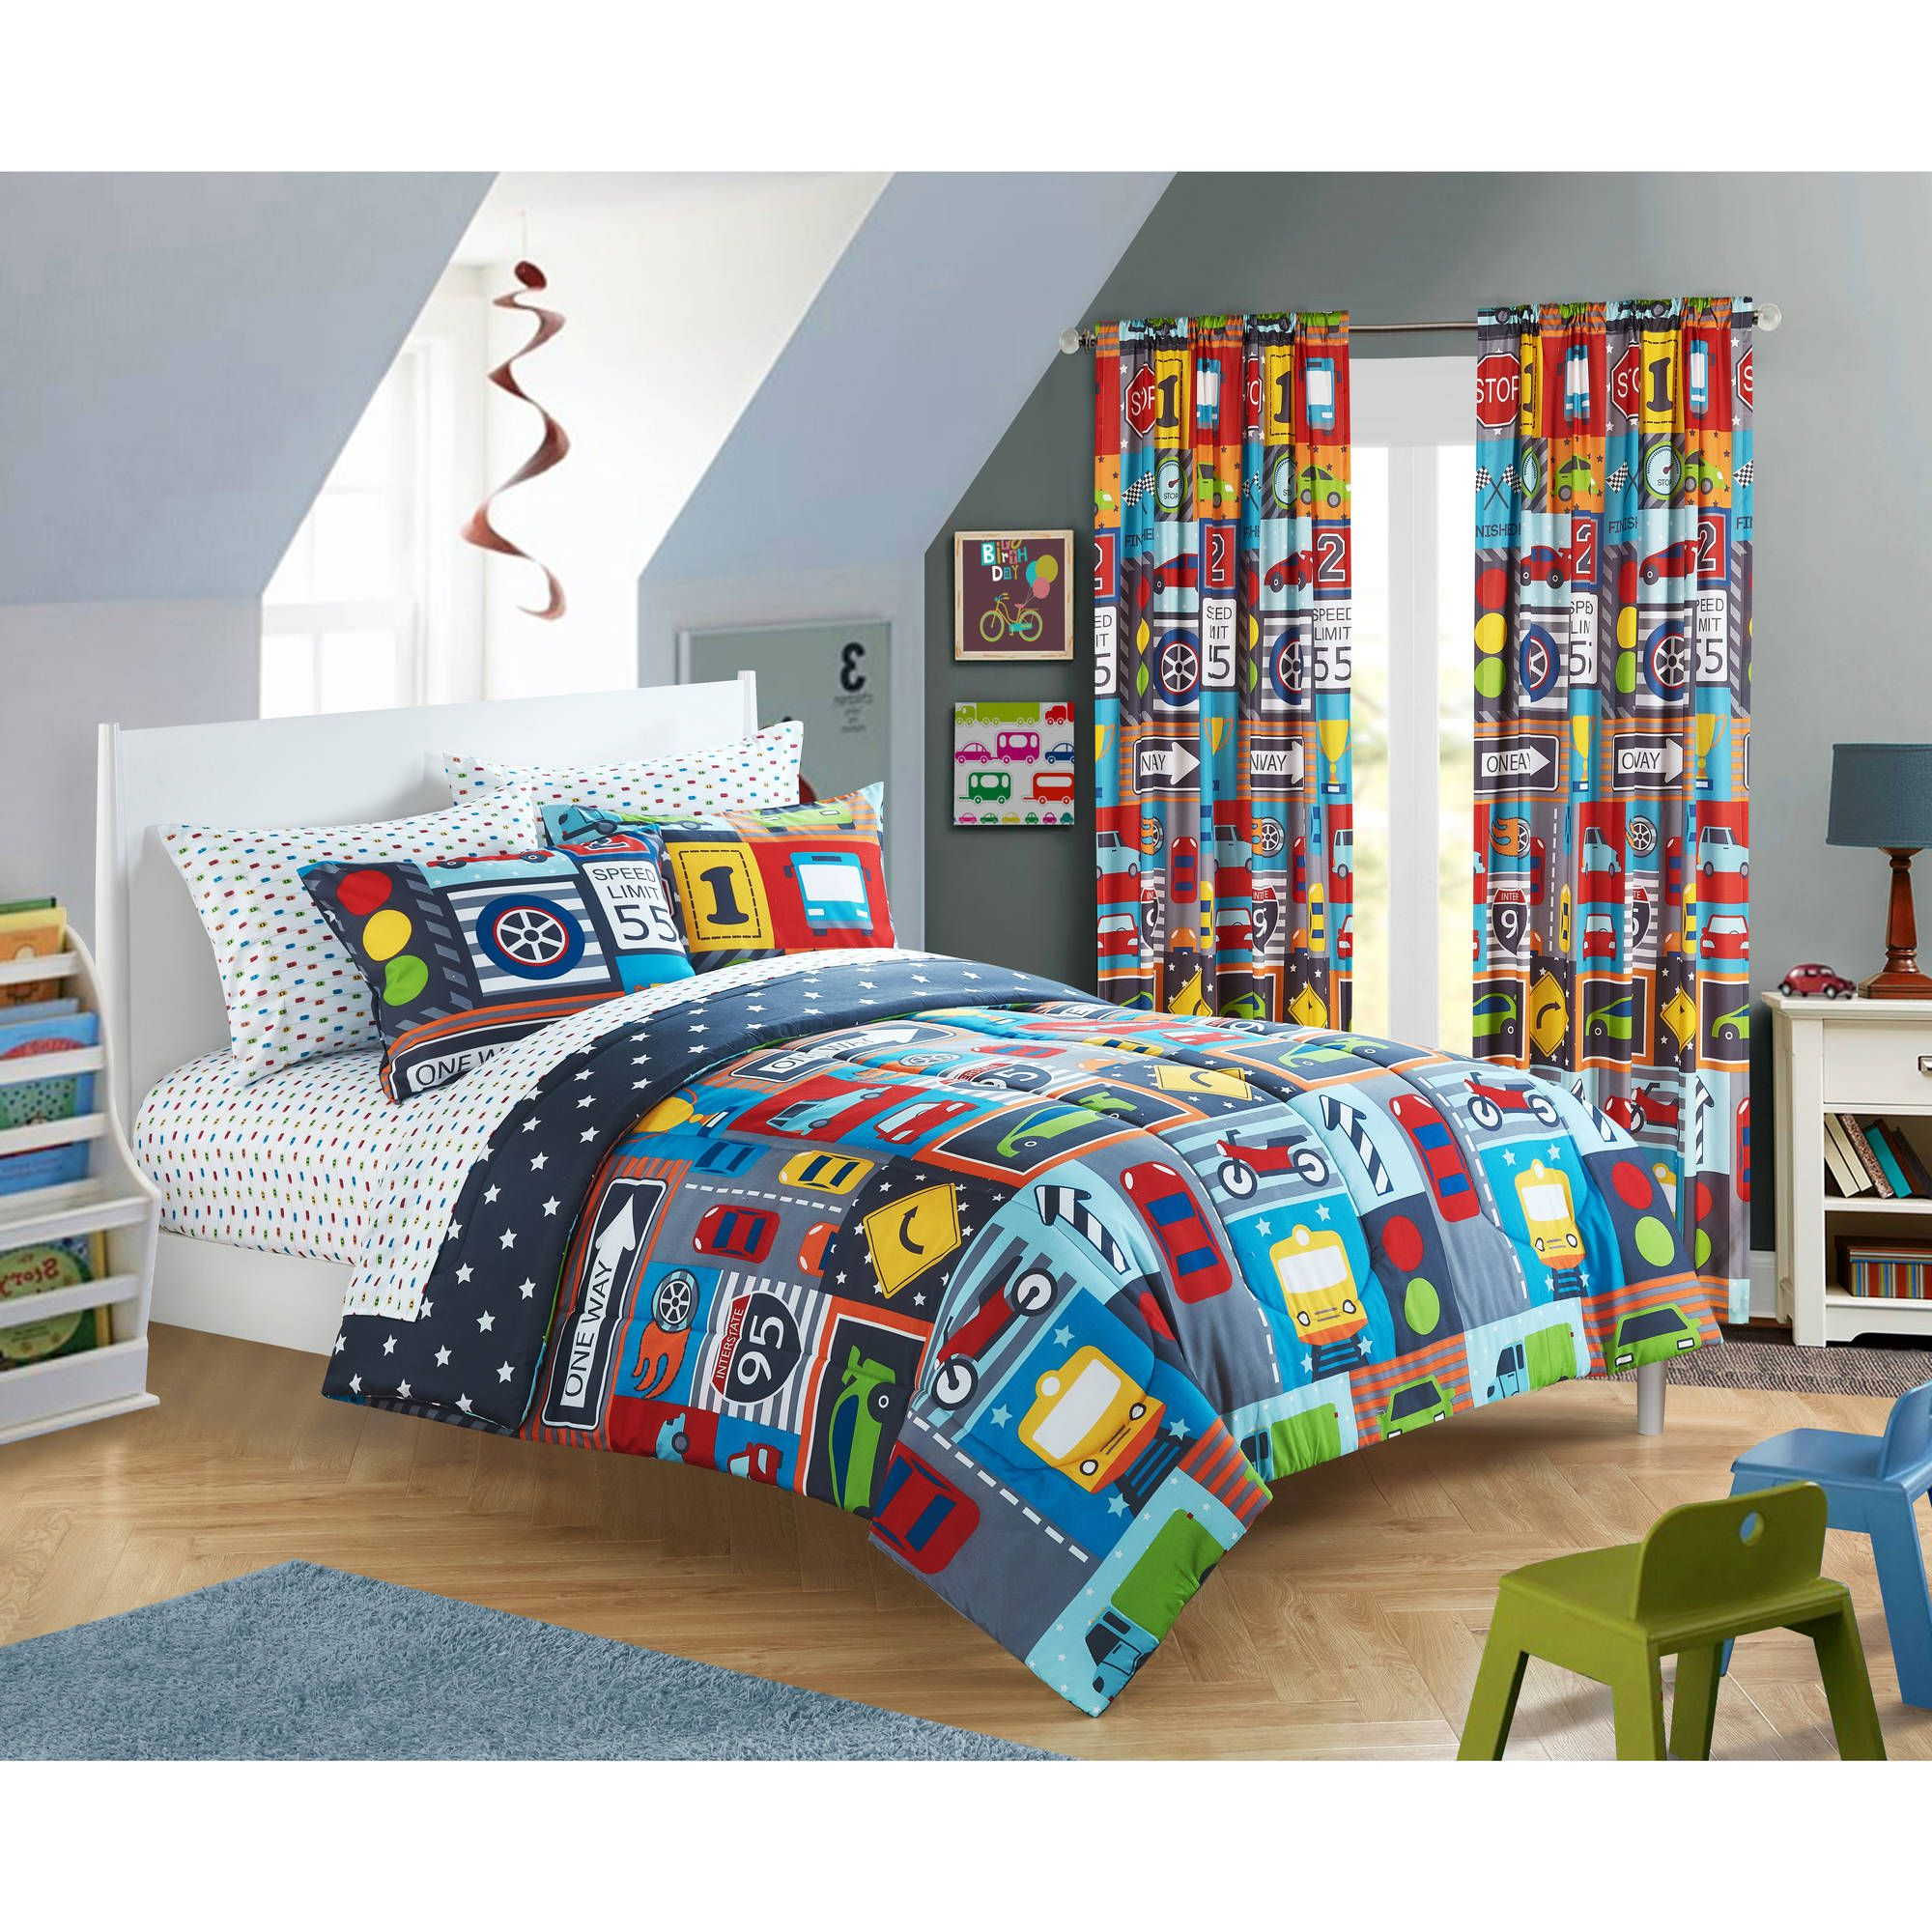 Mainstays Kids Busy Car Transportation Bed In A Bag Bedding Set Price Schlafzimmer Design Schlafzimmer Zimmer